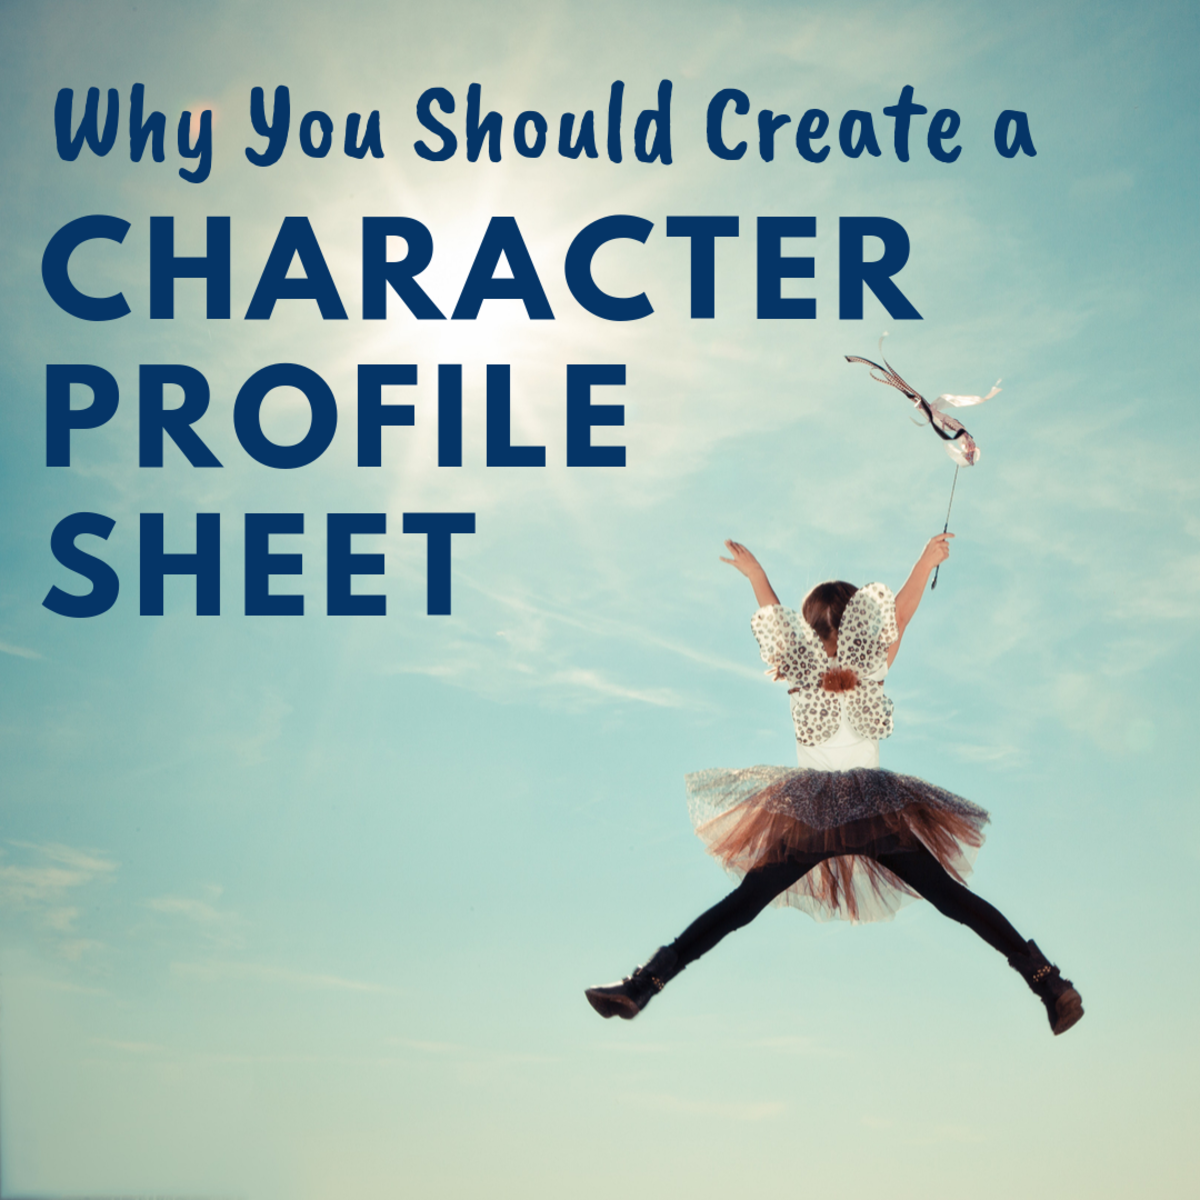 How to Create a Character Profile Sheet